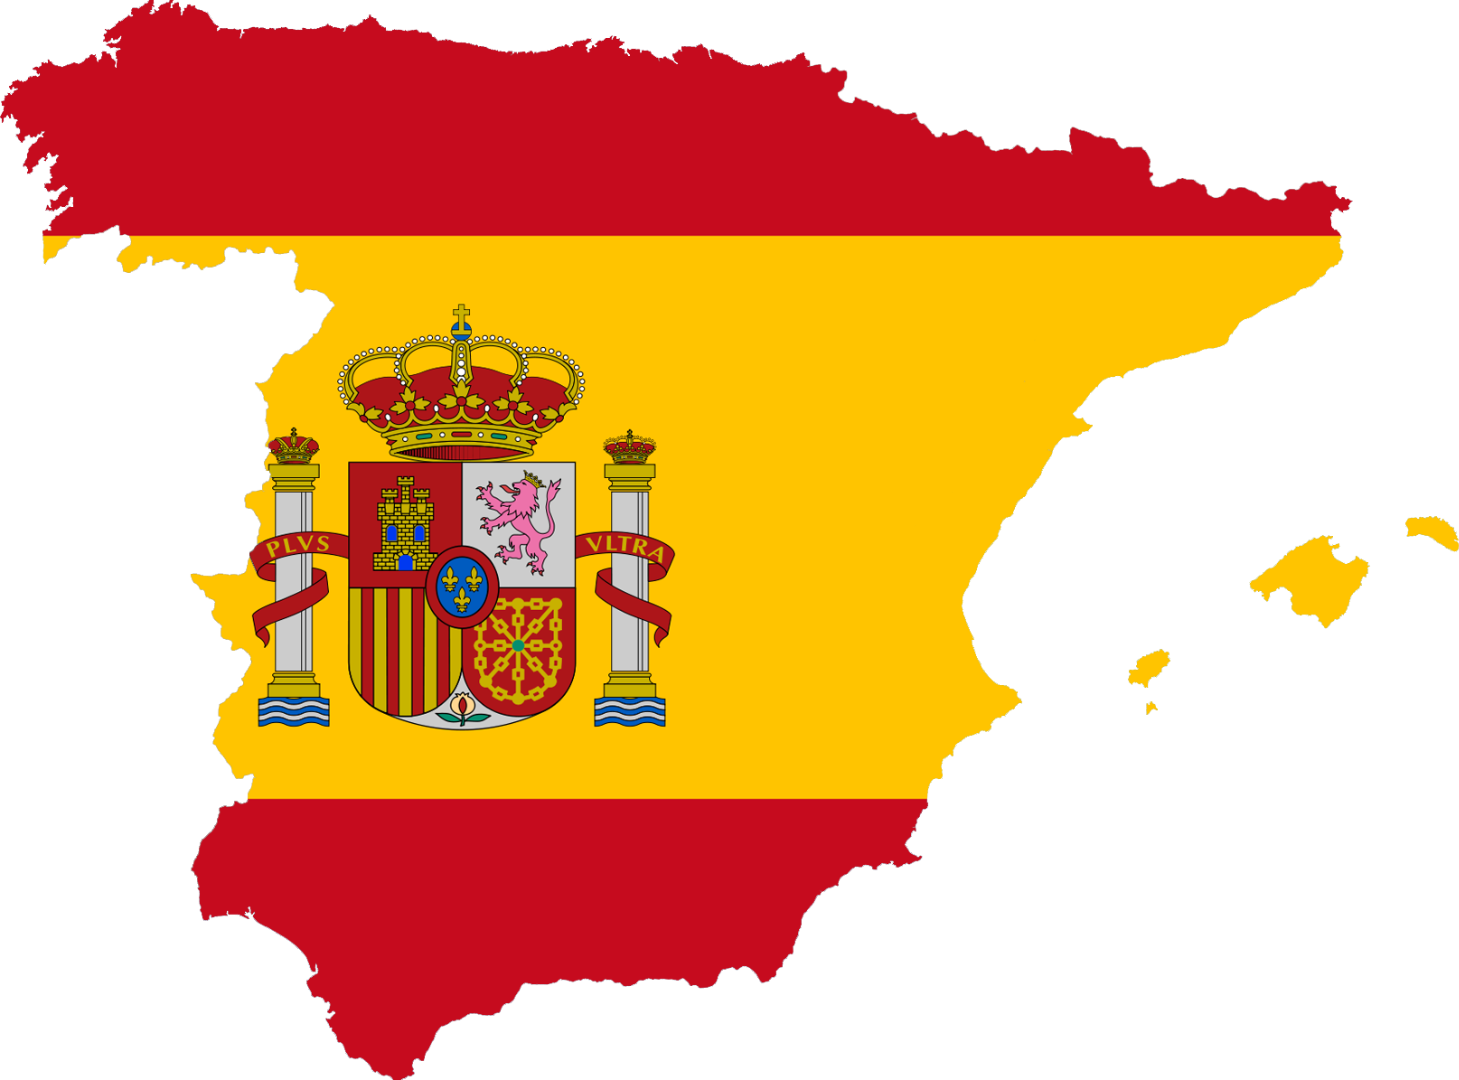 Spain's flag in the shape of the country